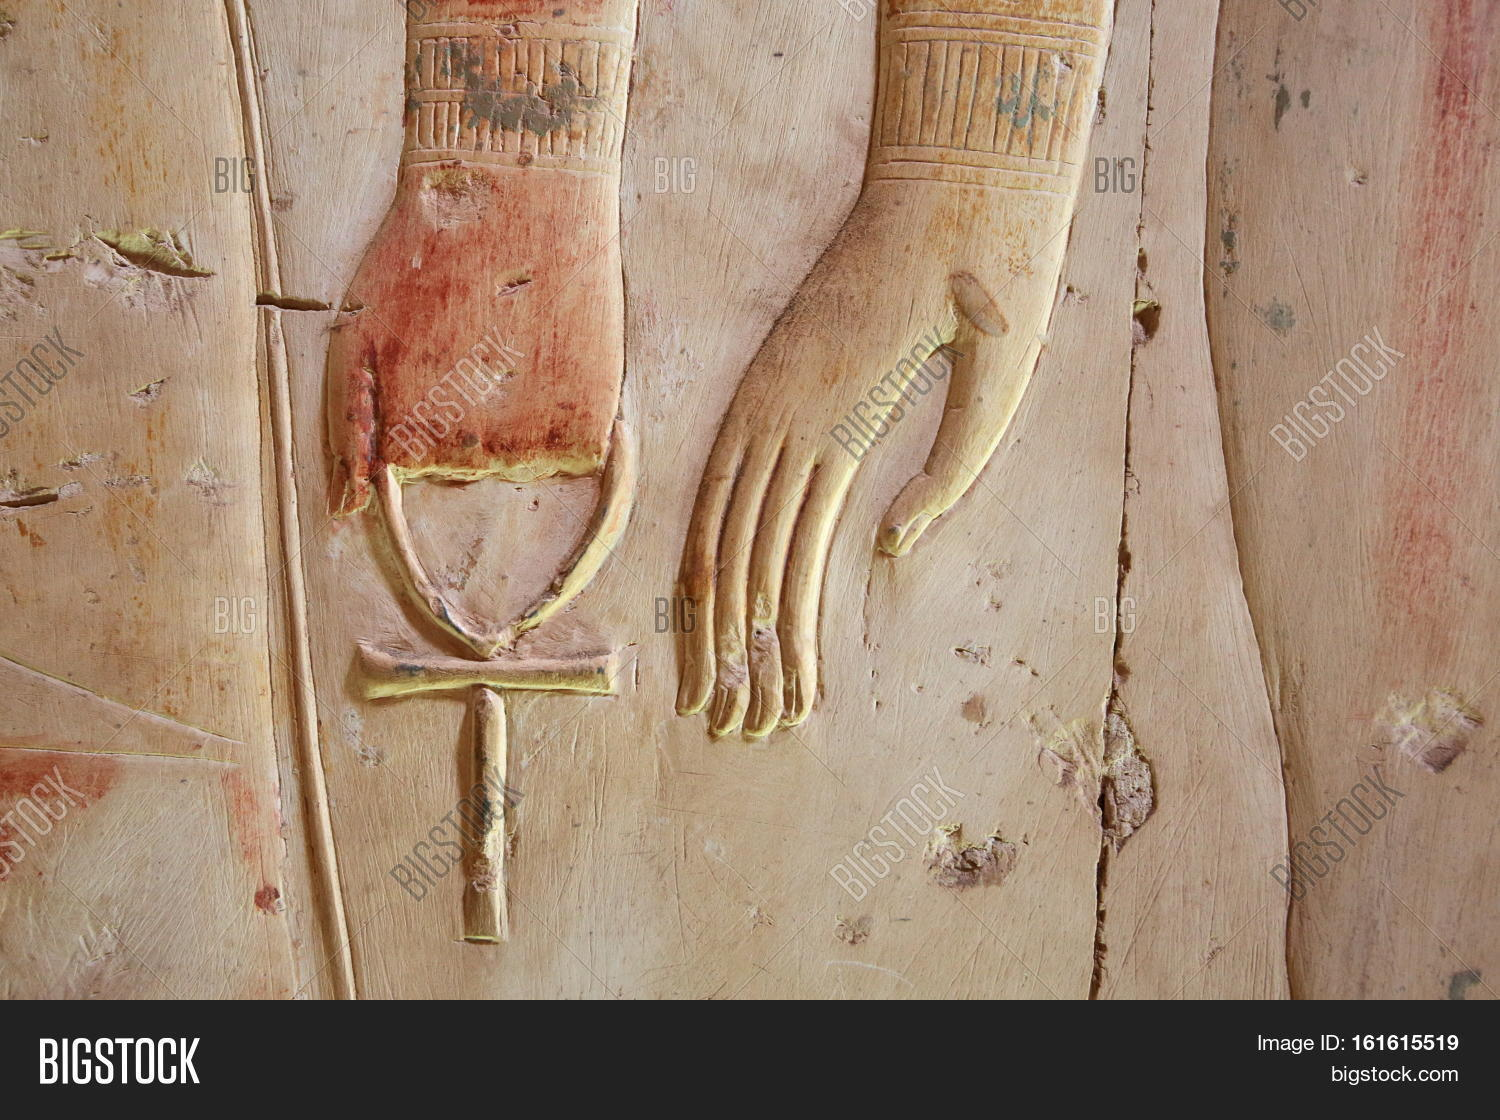 Ankh Ancient Egyptian Image Photo Free Trial Bigstock